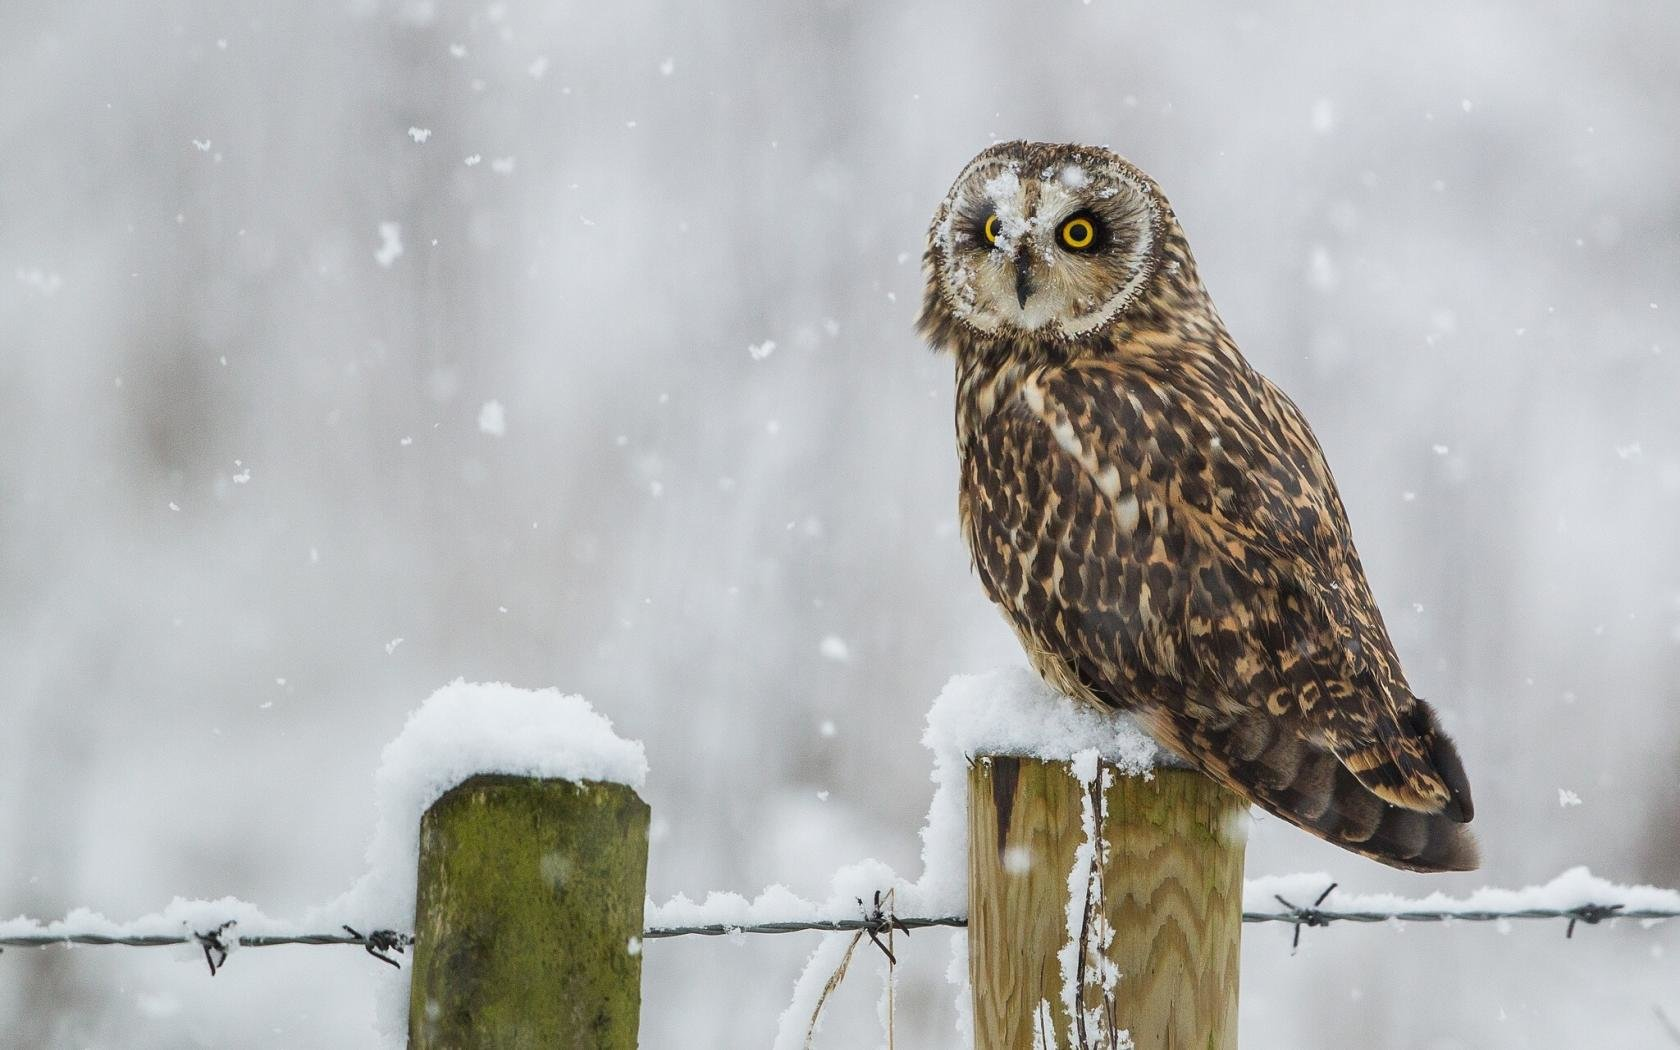 Free Owl high quality wallpaper ID:237051 for hd 1680x1050 desktop